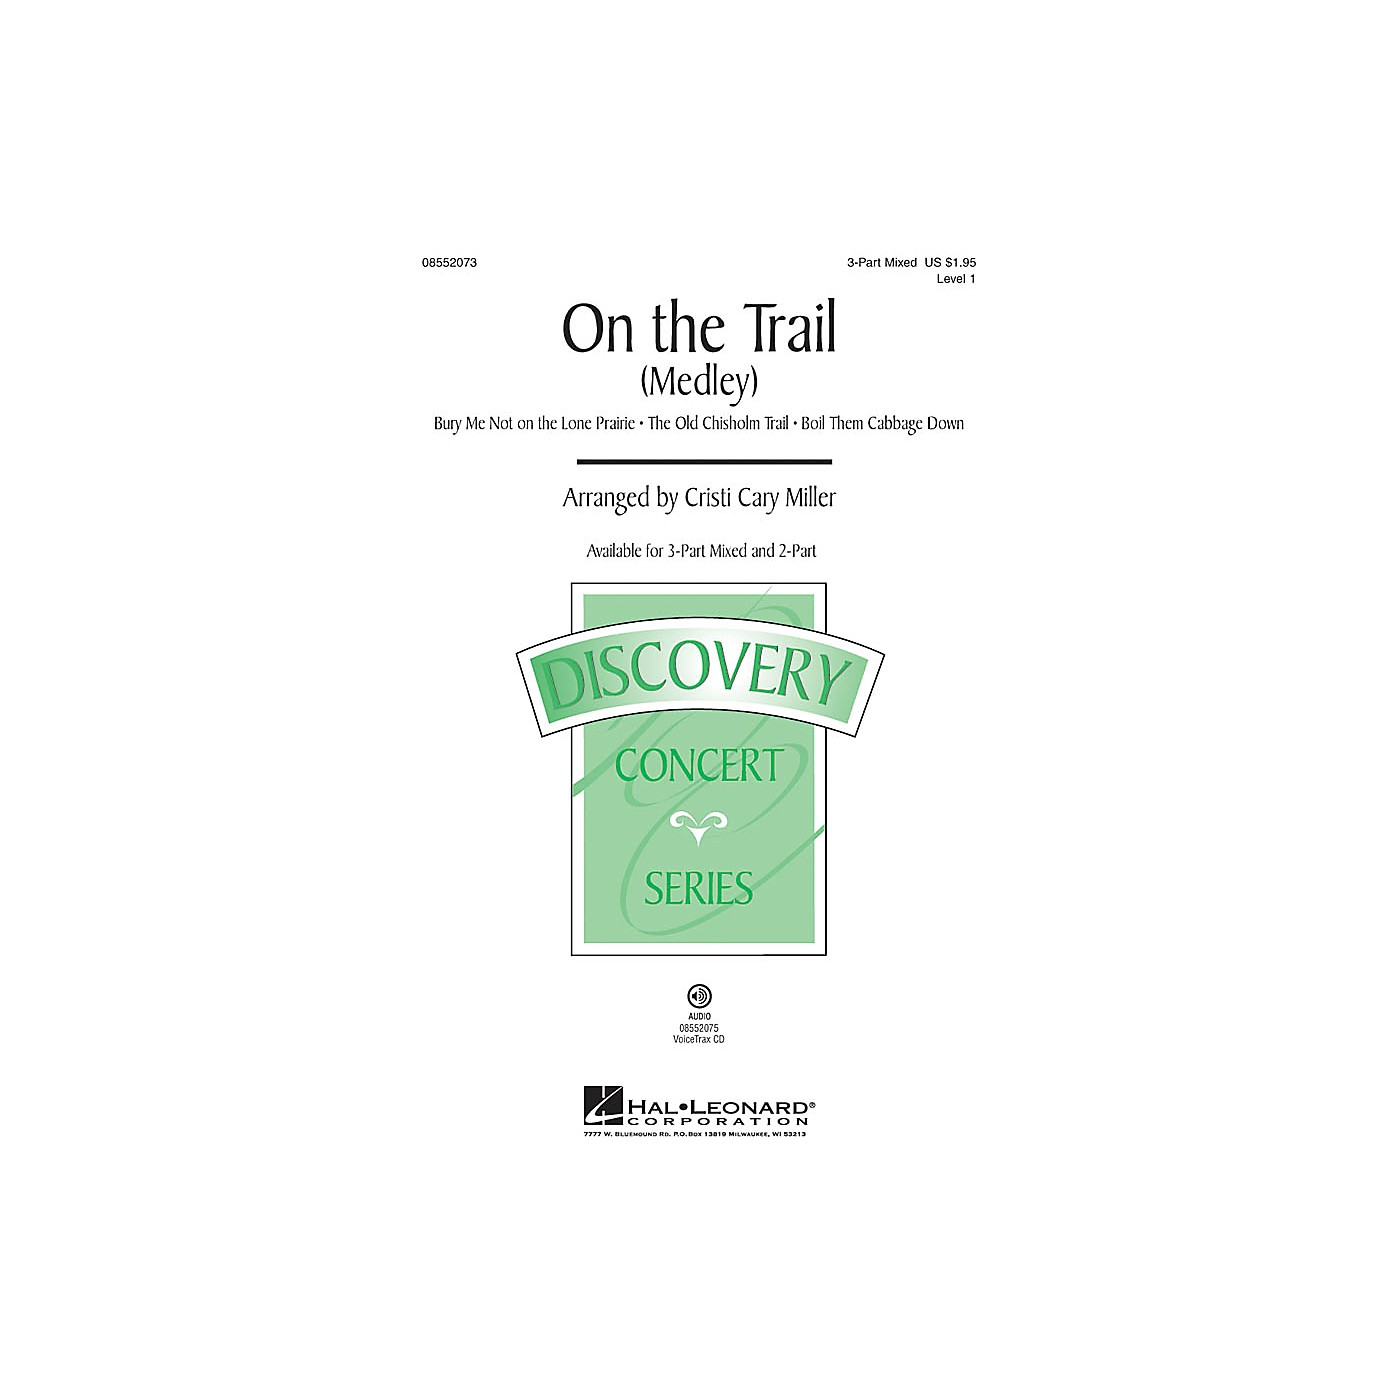 Hal Leonard On the Trail (Medley) 2-Part Arranged by Cristi Cary Miller thumbnail